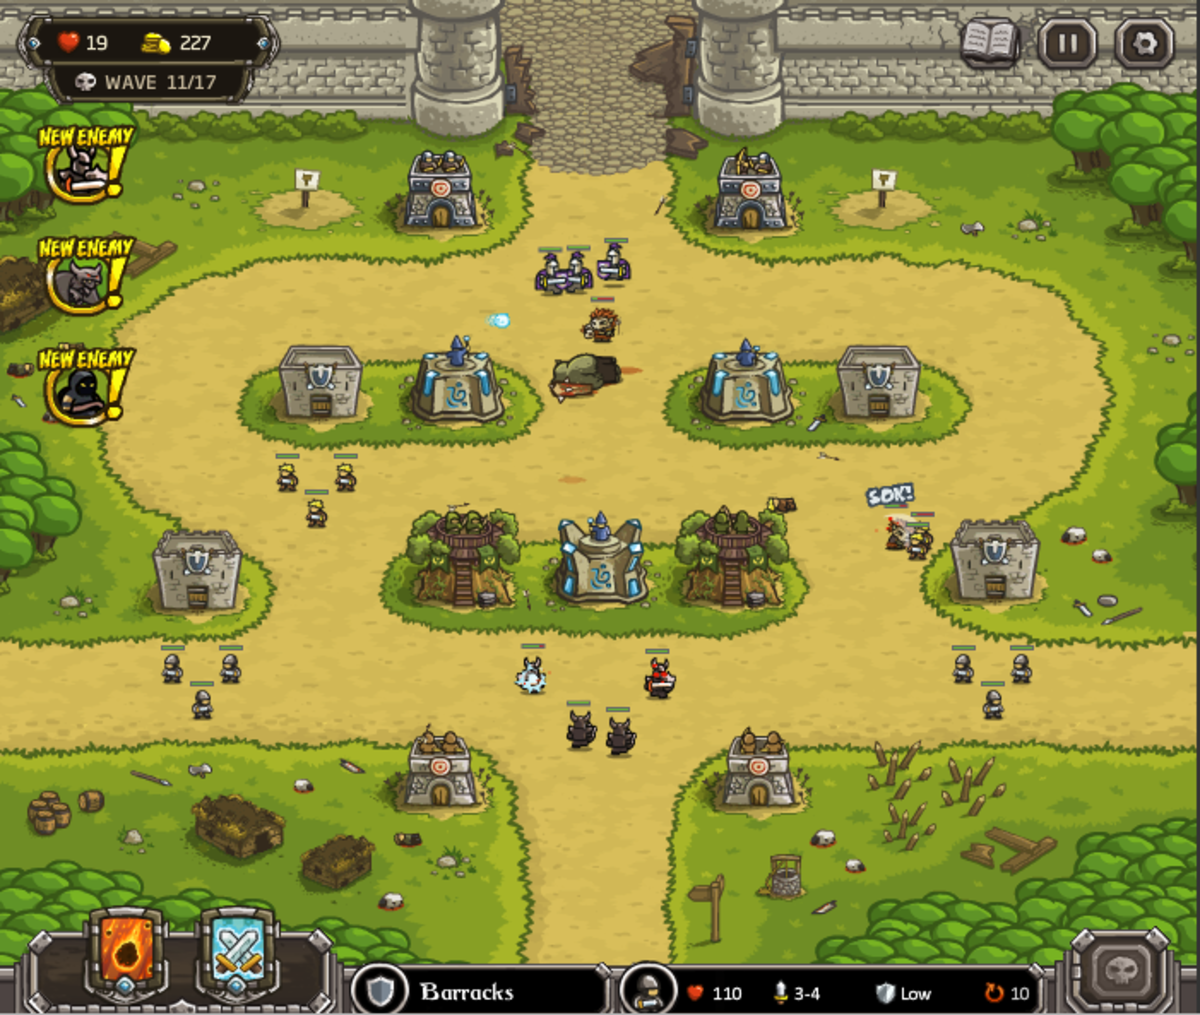 Kingdom Rush walkthrough: Level 6 - The Citadel